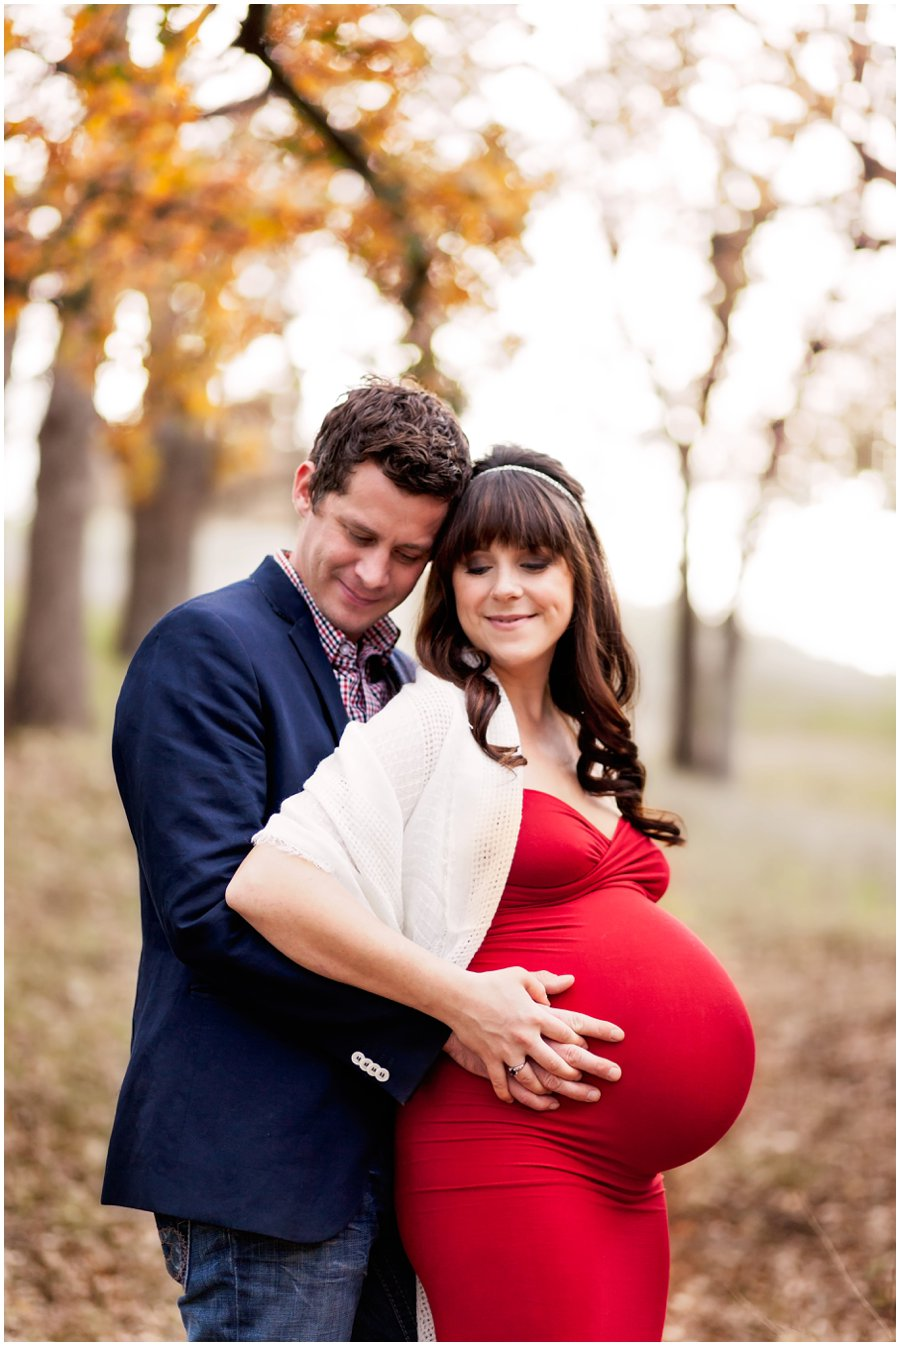 Romantic, Outdoorsy Maternity Portraits by Just Maggie Photography - Los Angeles Maternity and Newborn Photographer